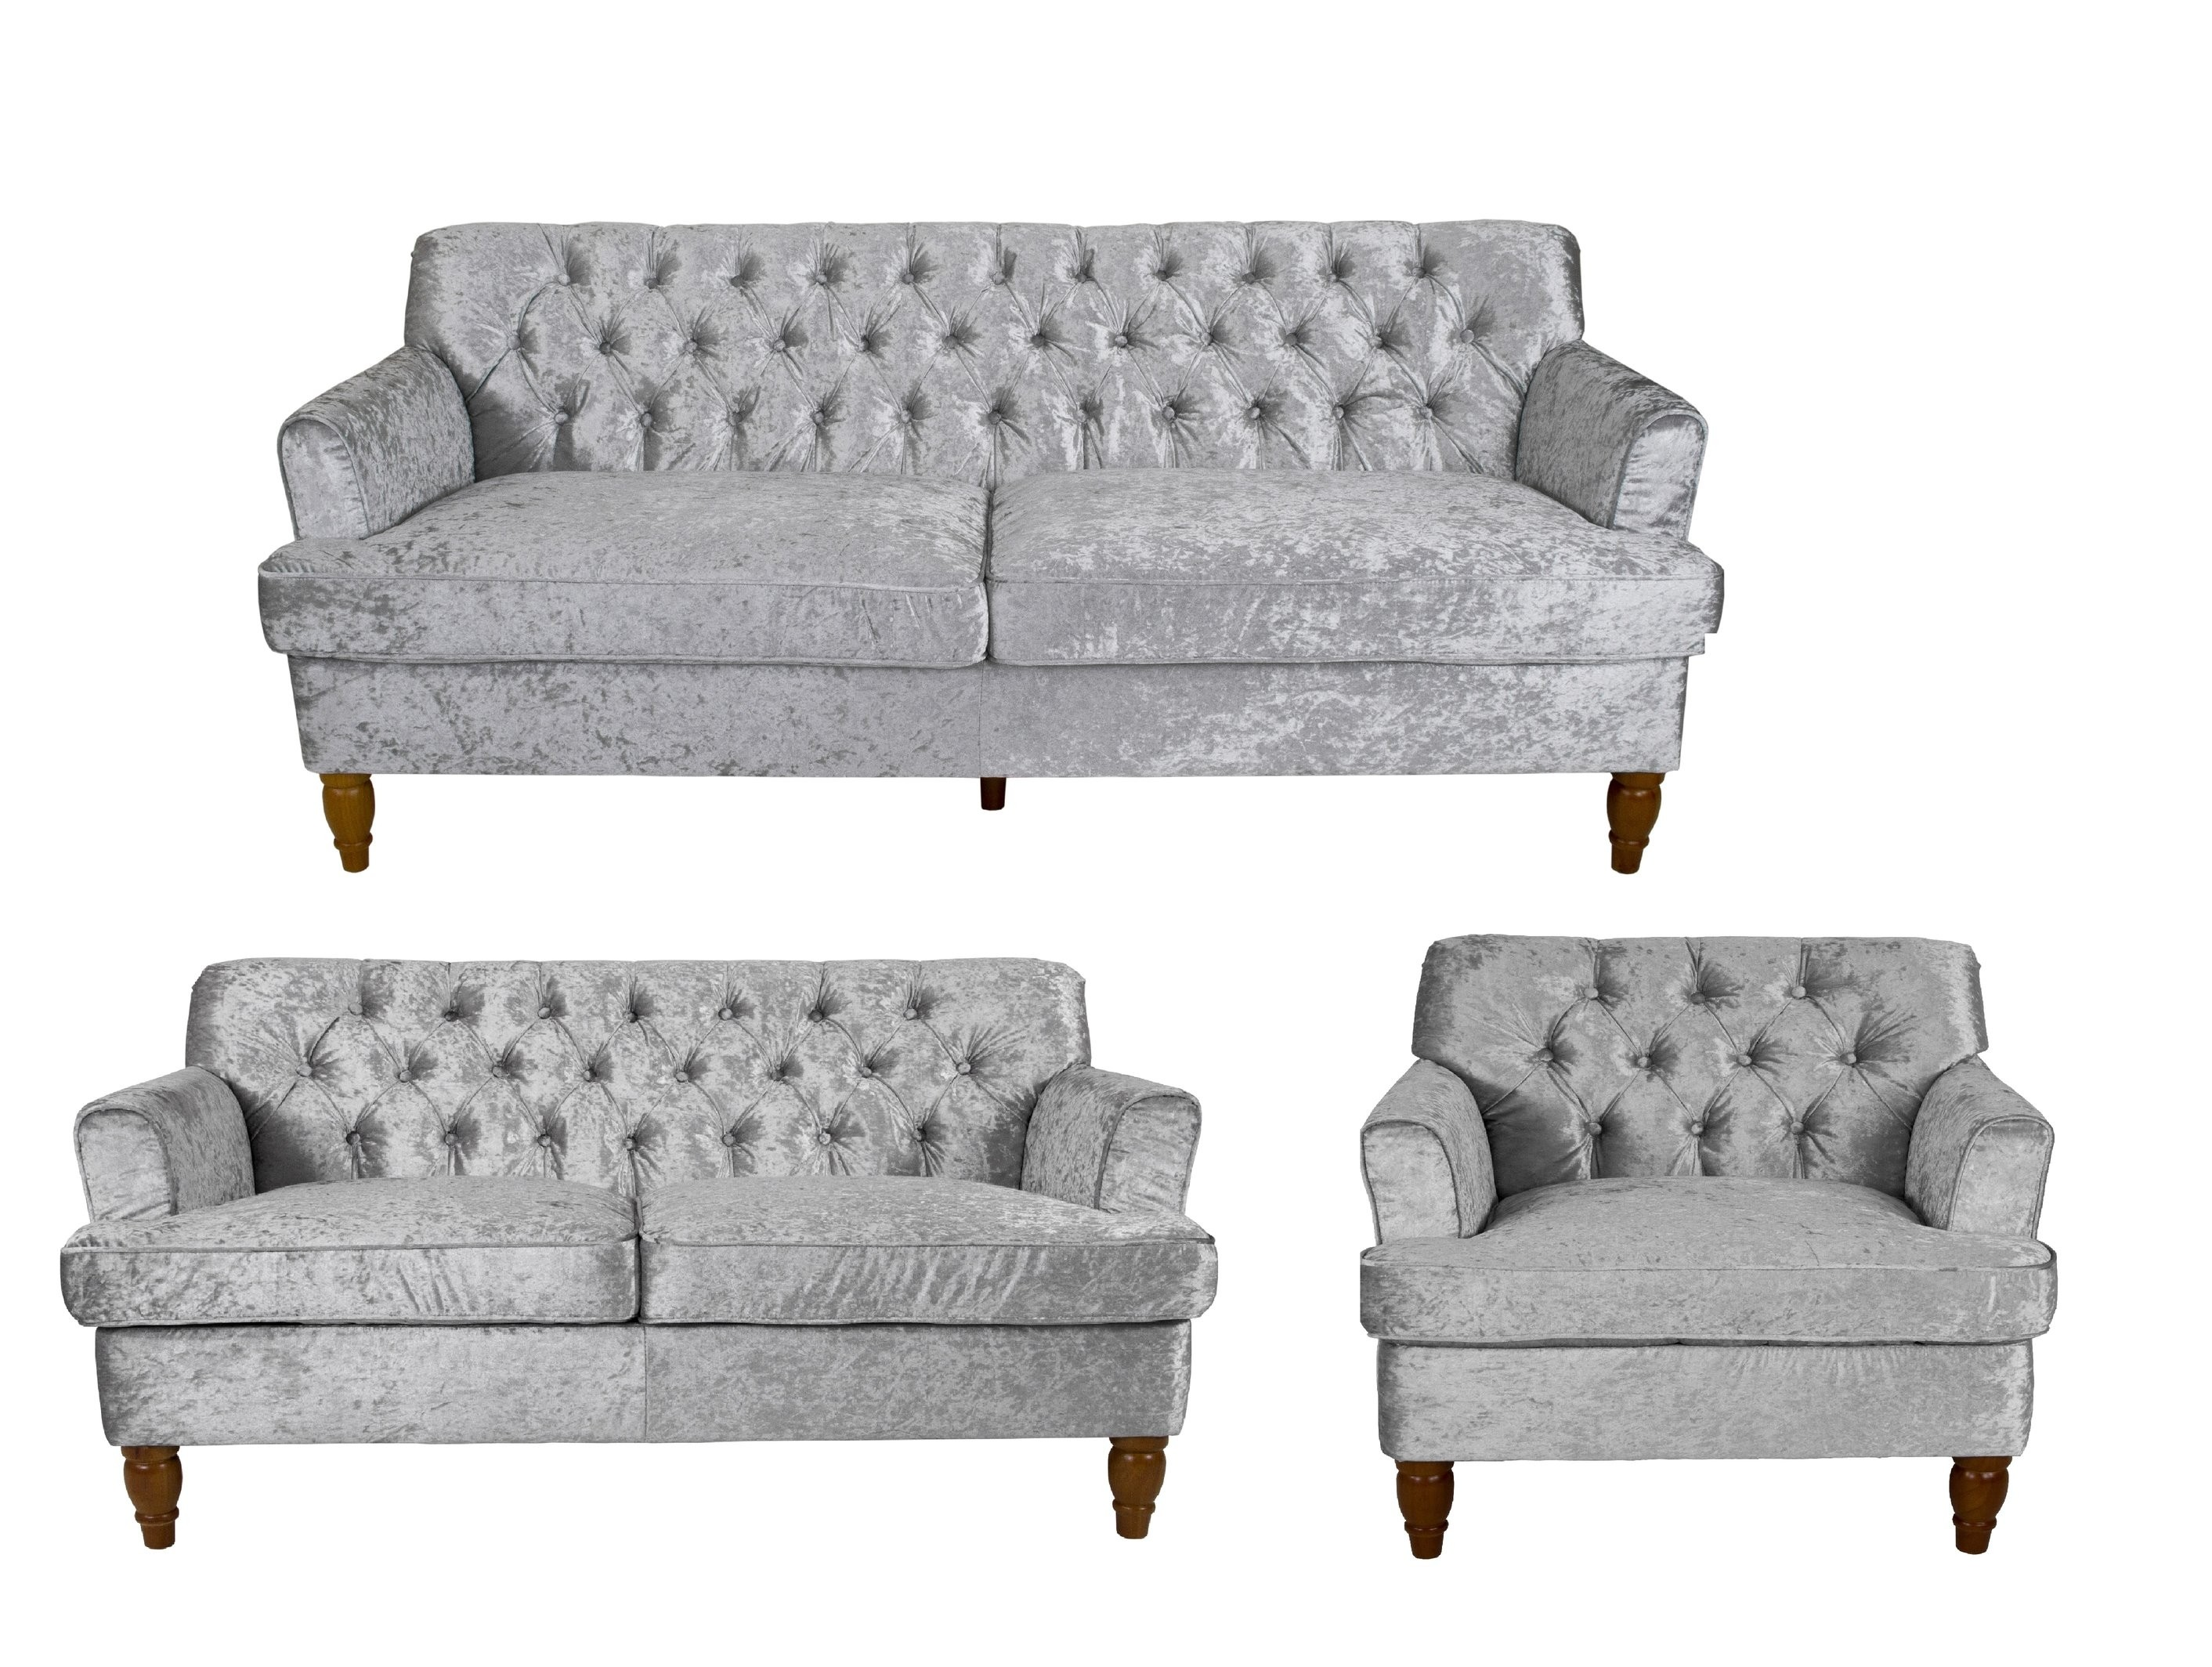 Incroyable Mayfair Crushed Velvet Sofa Collection